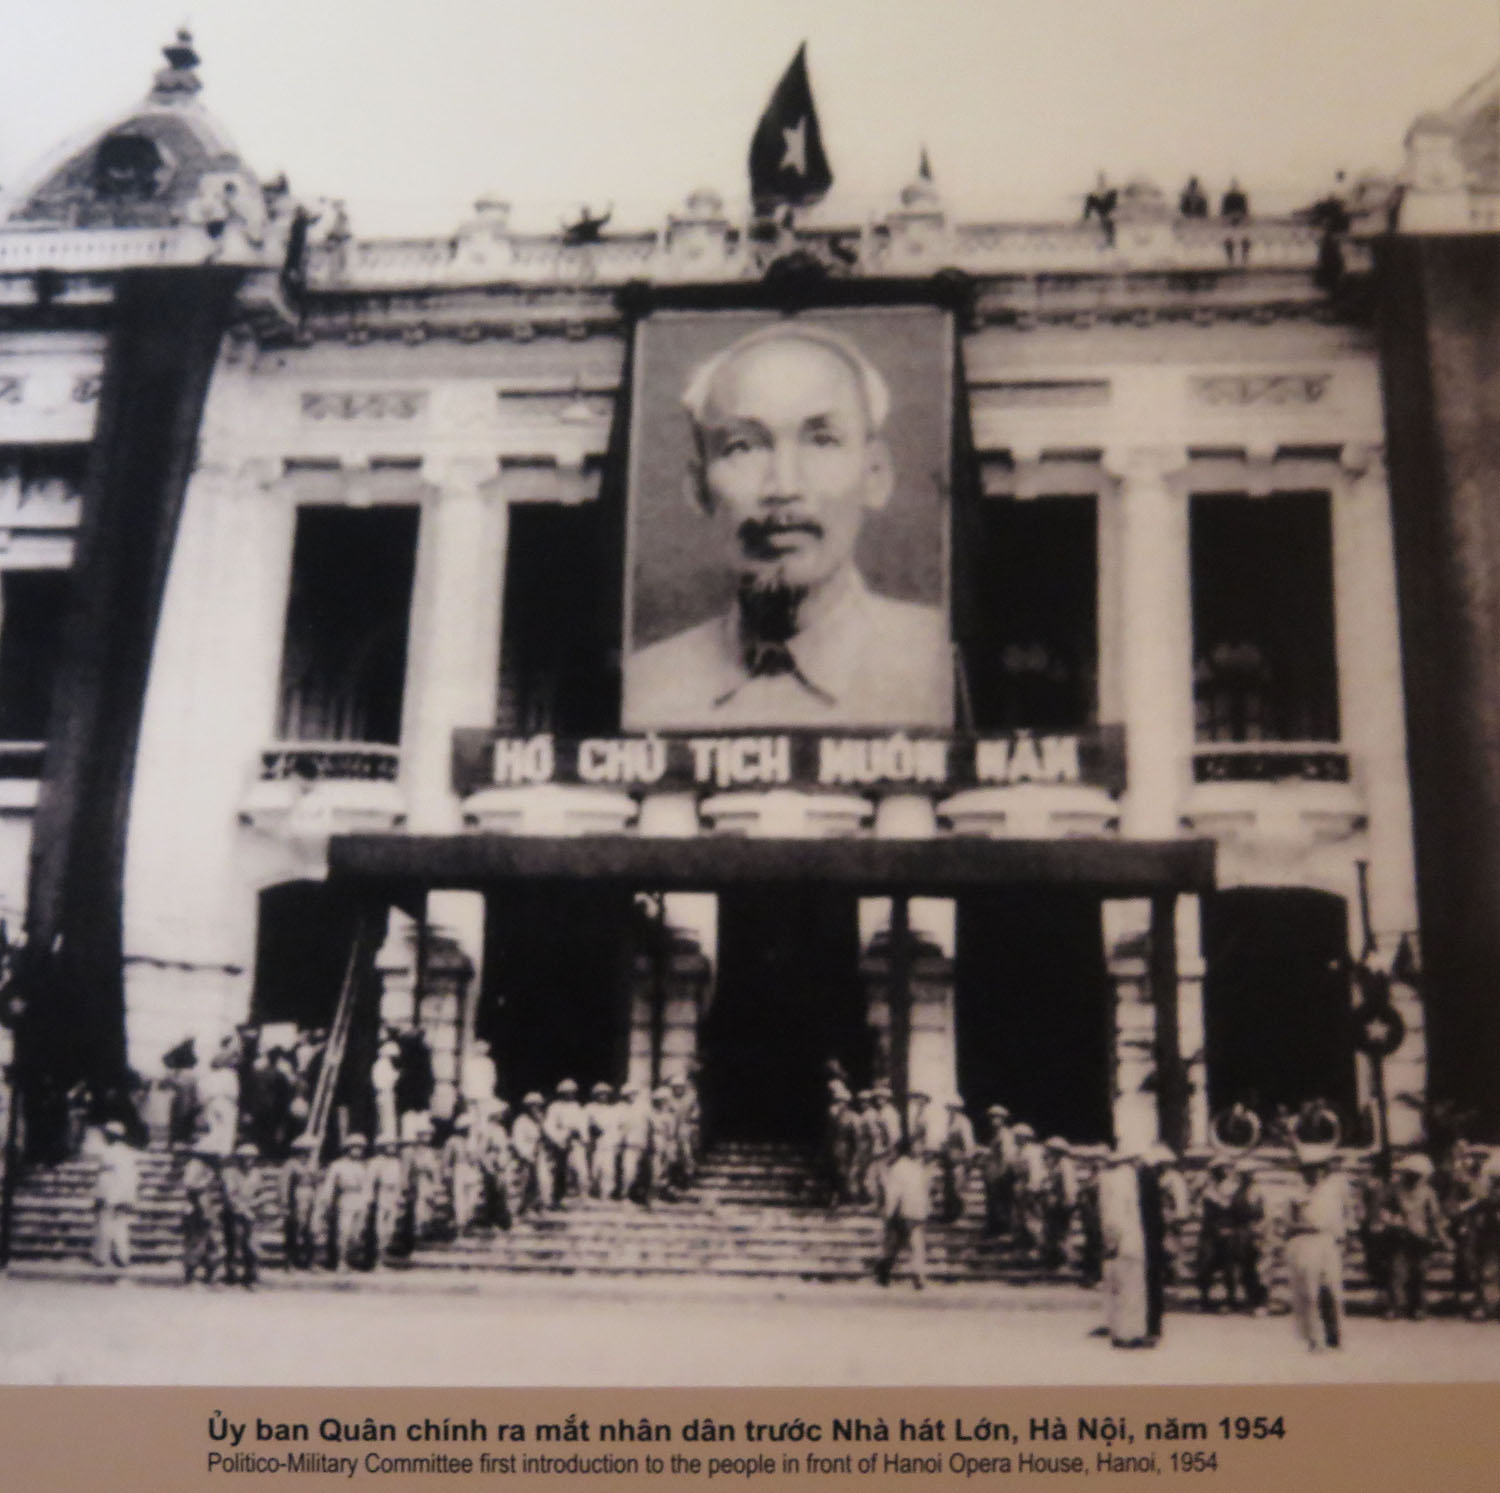 Vietnam-Hanoi-Hoa-Lo-Prison-French-Occupation-Ho-Chi-Minh-1954